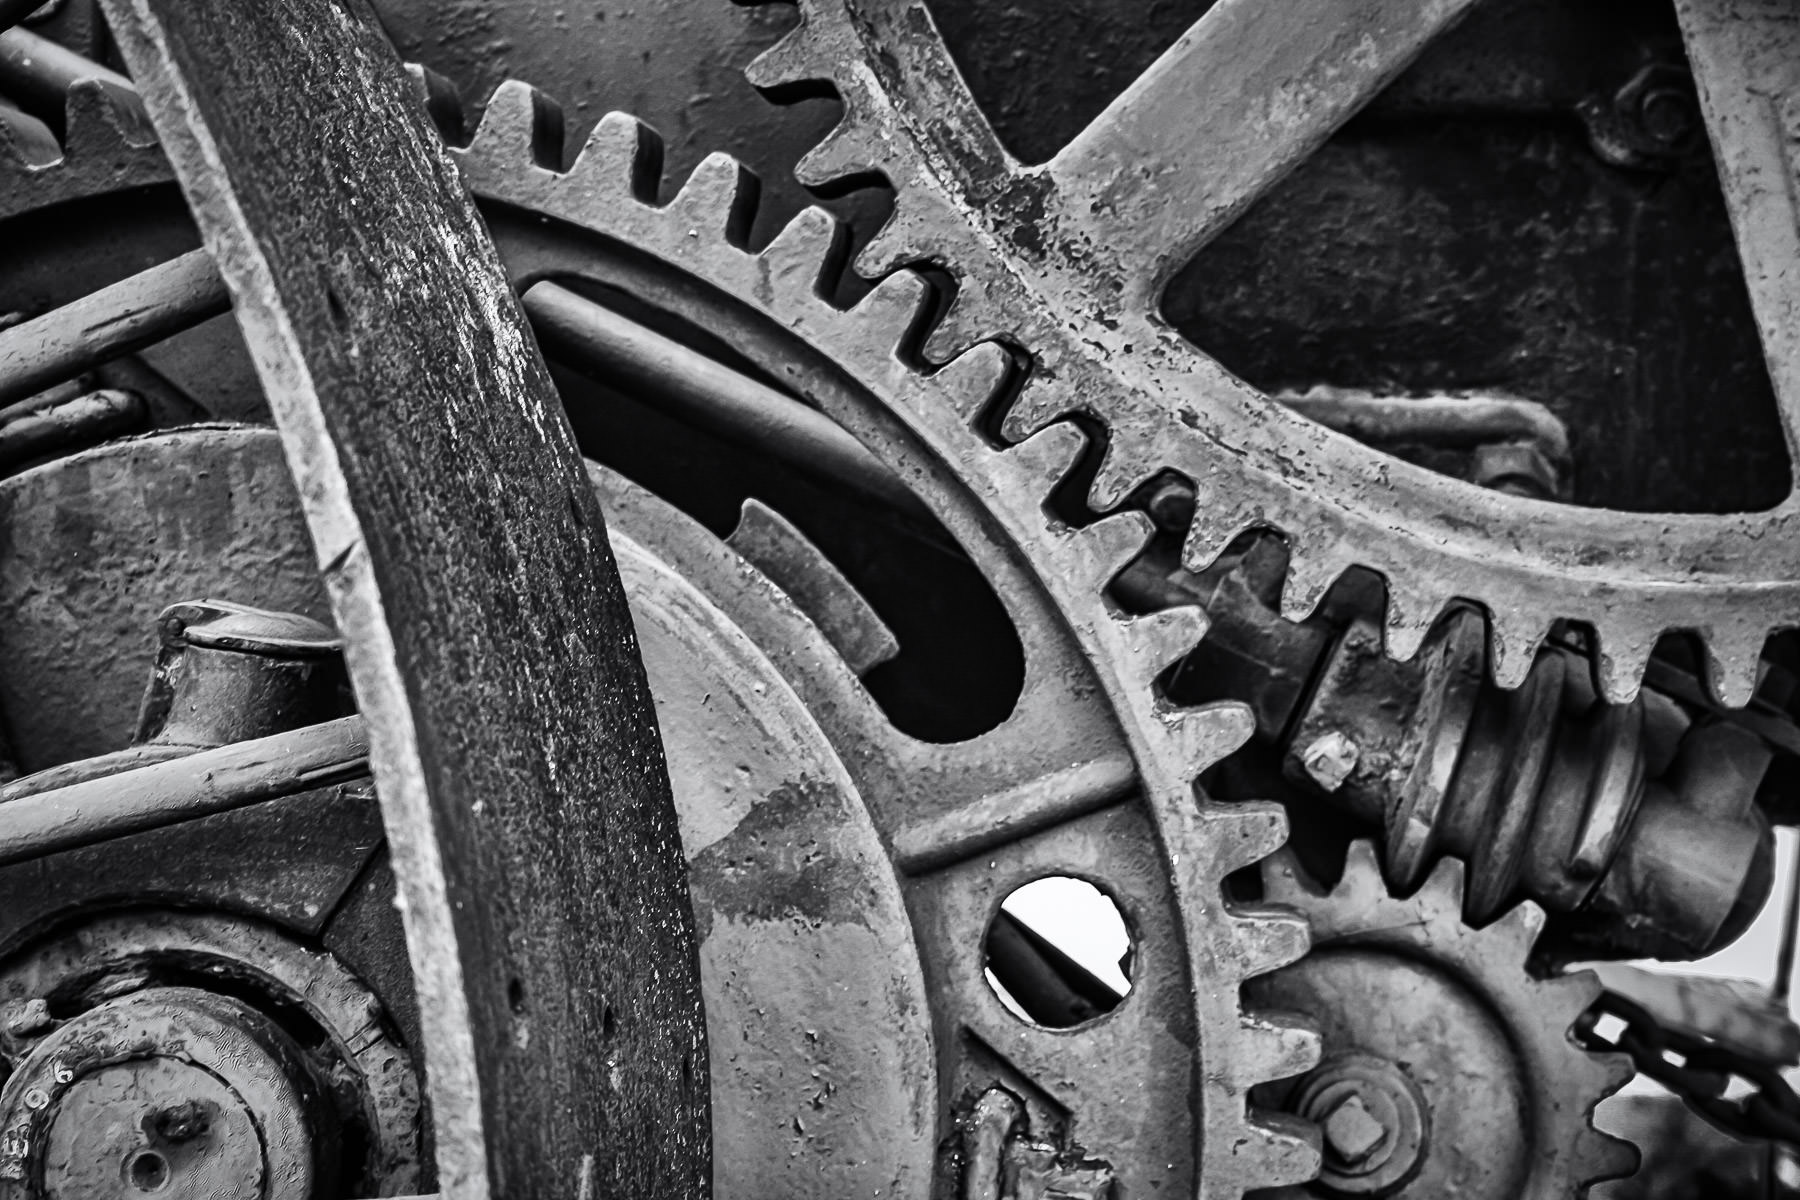 Detail of the drive train of an old steam-powered tractor in Marietta, Oklahoma.